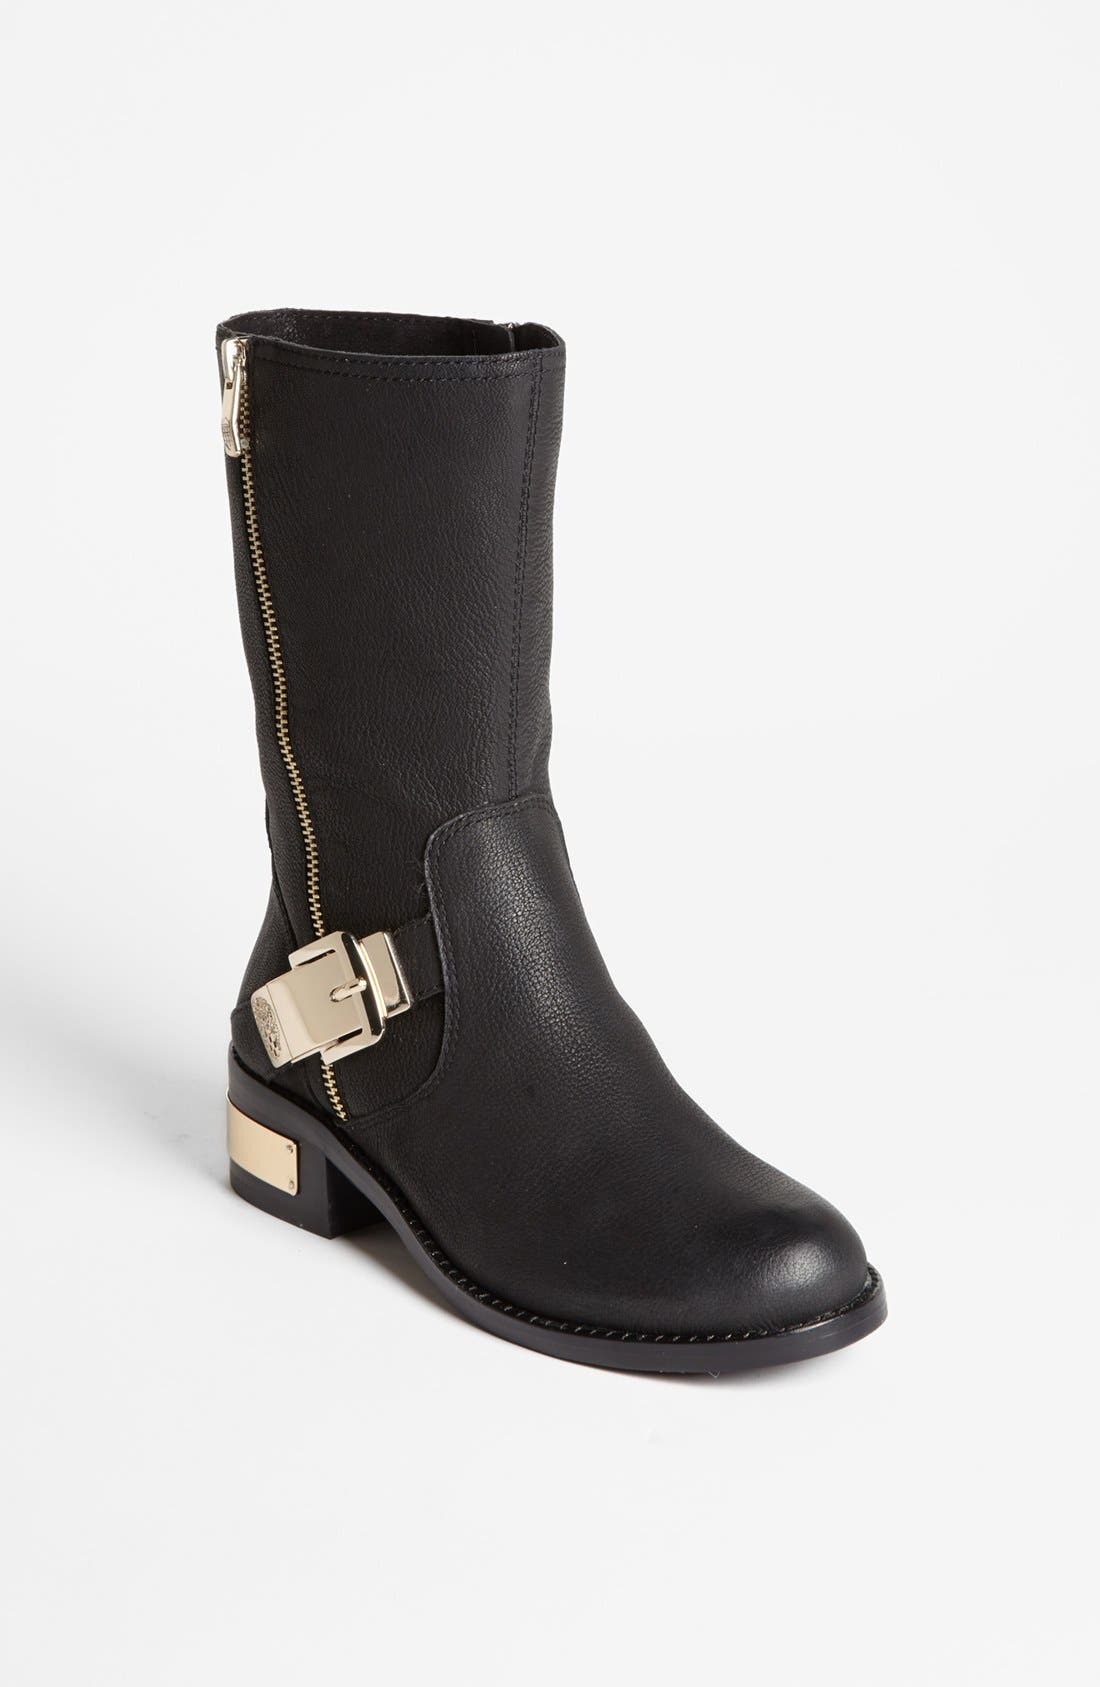 Alternate Image 1 Selected - Vince Camuto 'Wex' Boot (Nordstrom Exclusive)